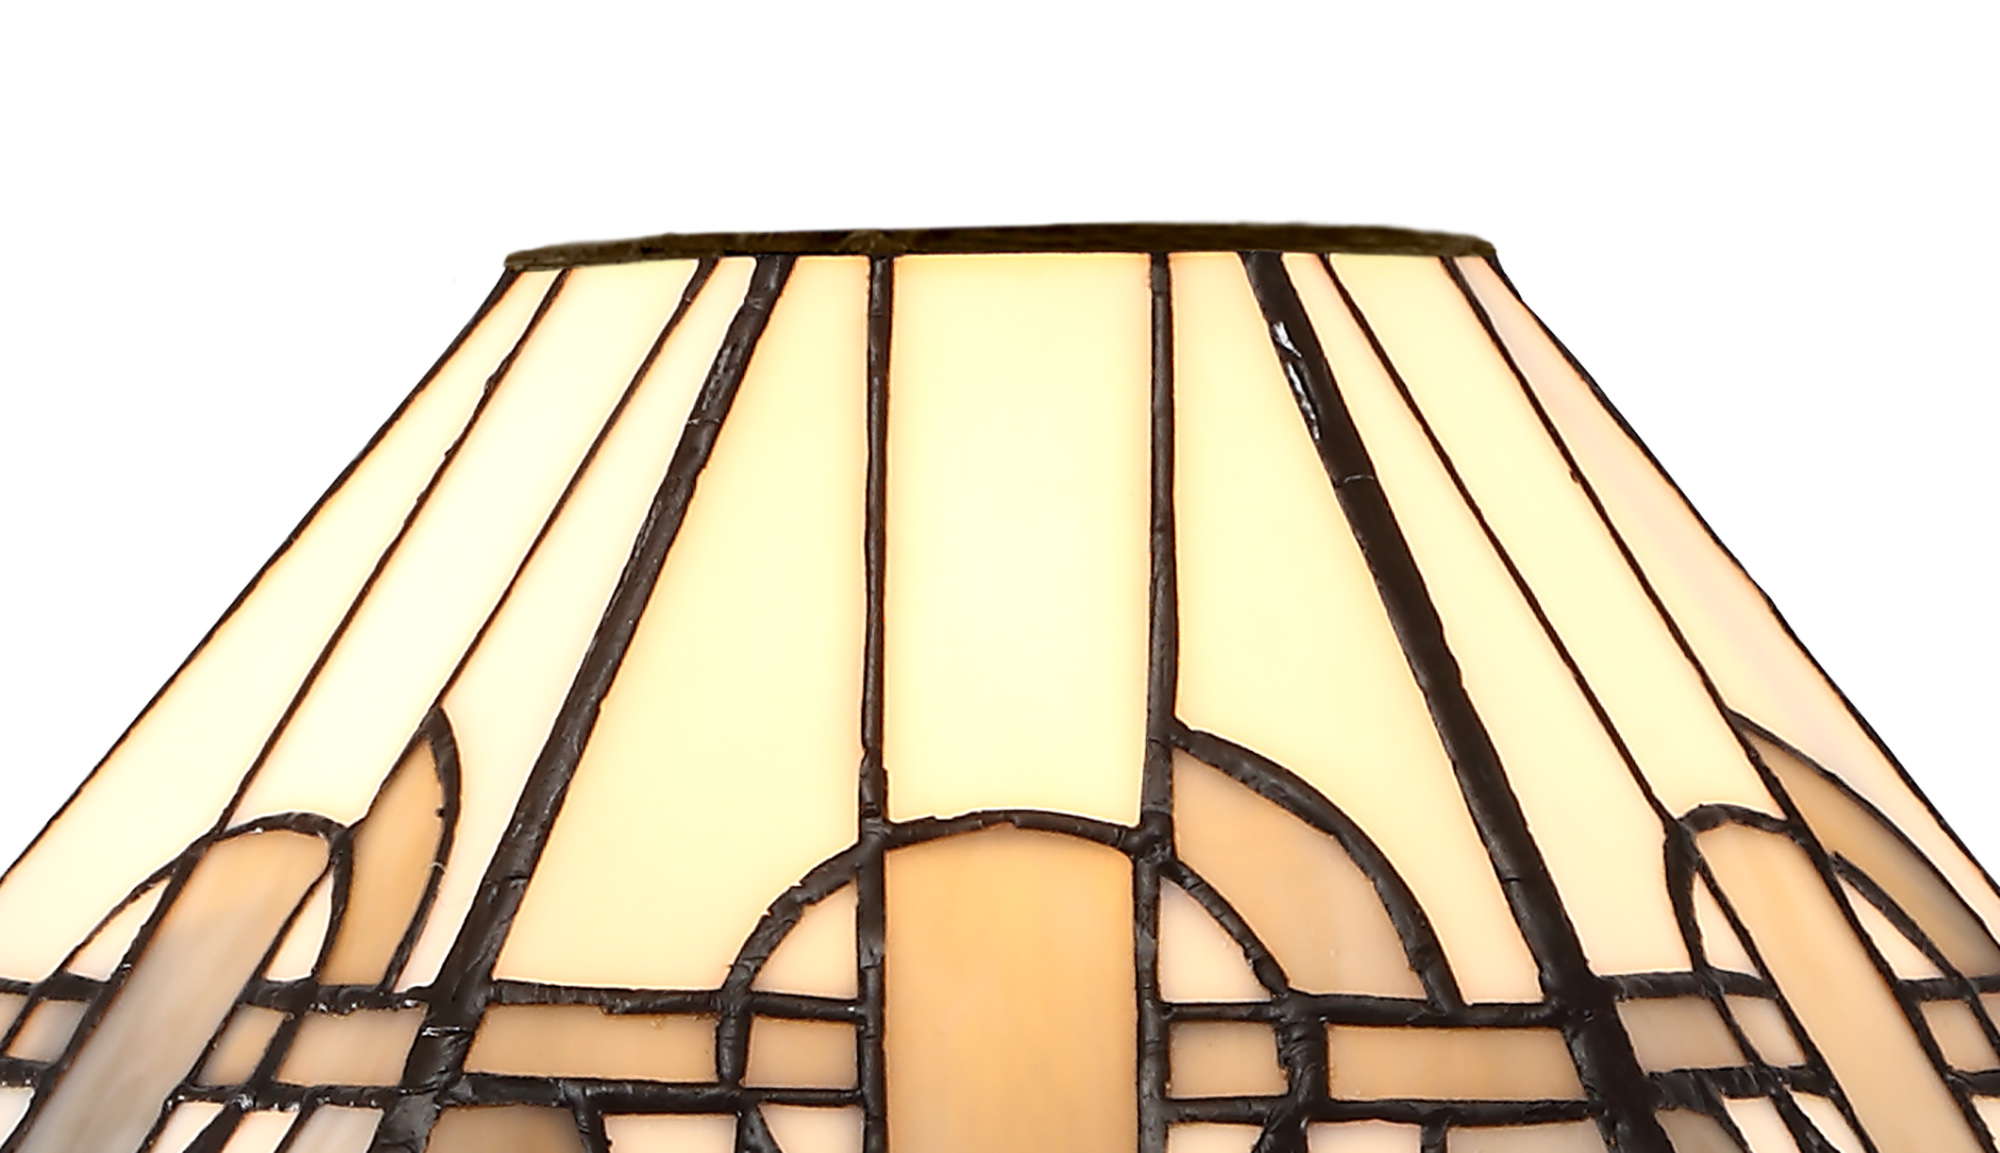 3 Light E27 Semi Ceiling With Tiffany Shade 30cm Shade, White/Grey/Black/Clear Crystal/Aged Antique Brass